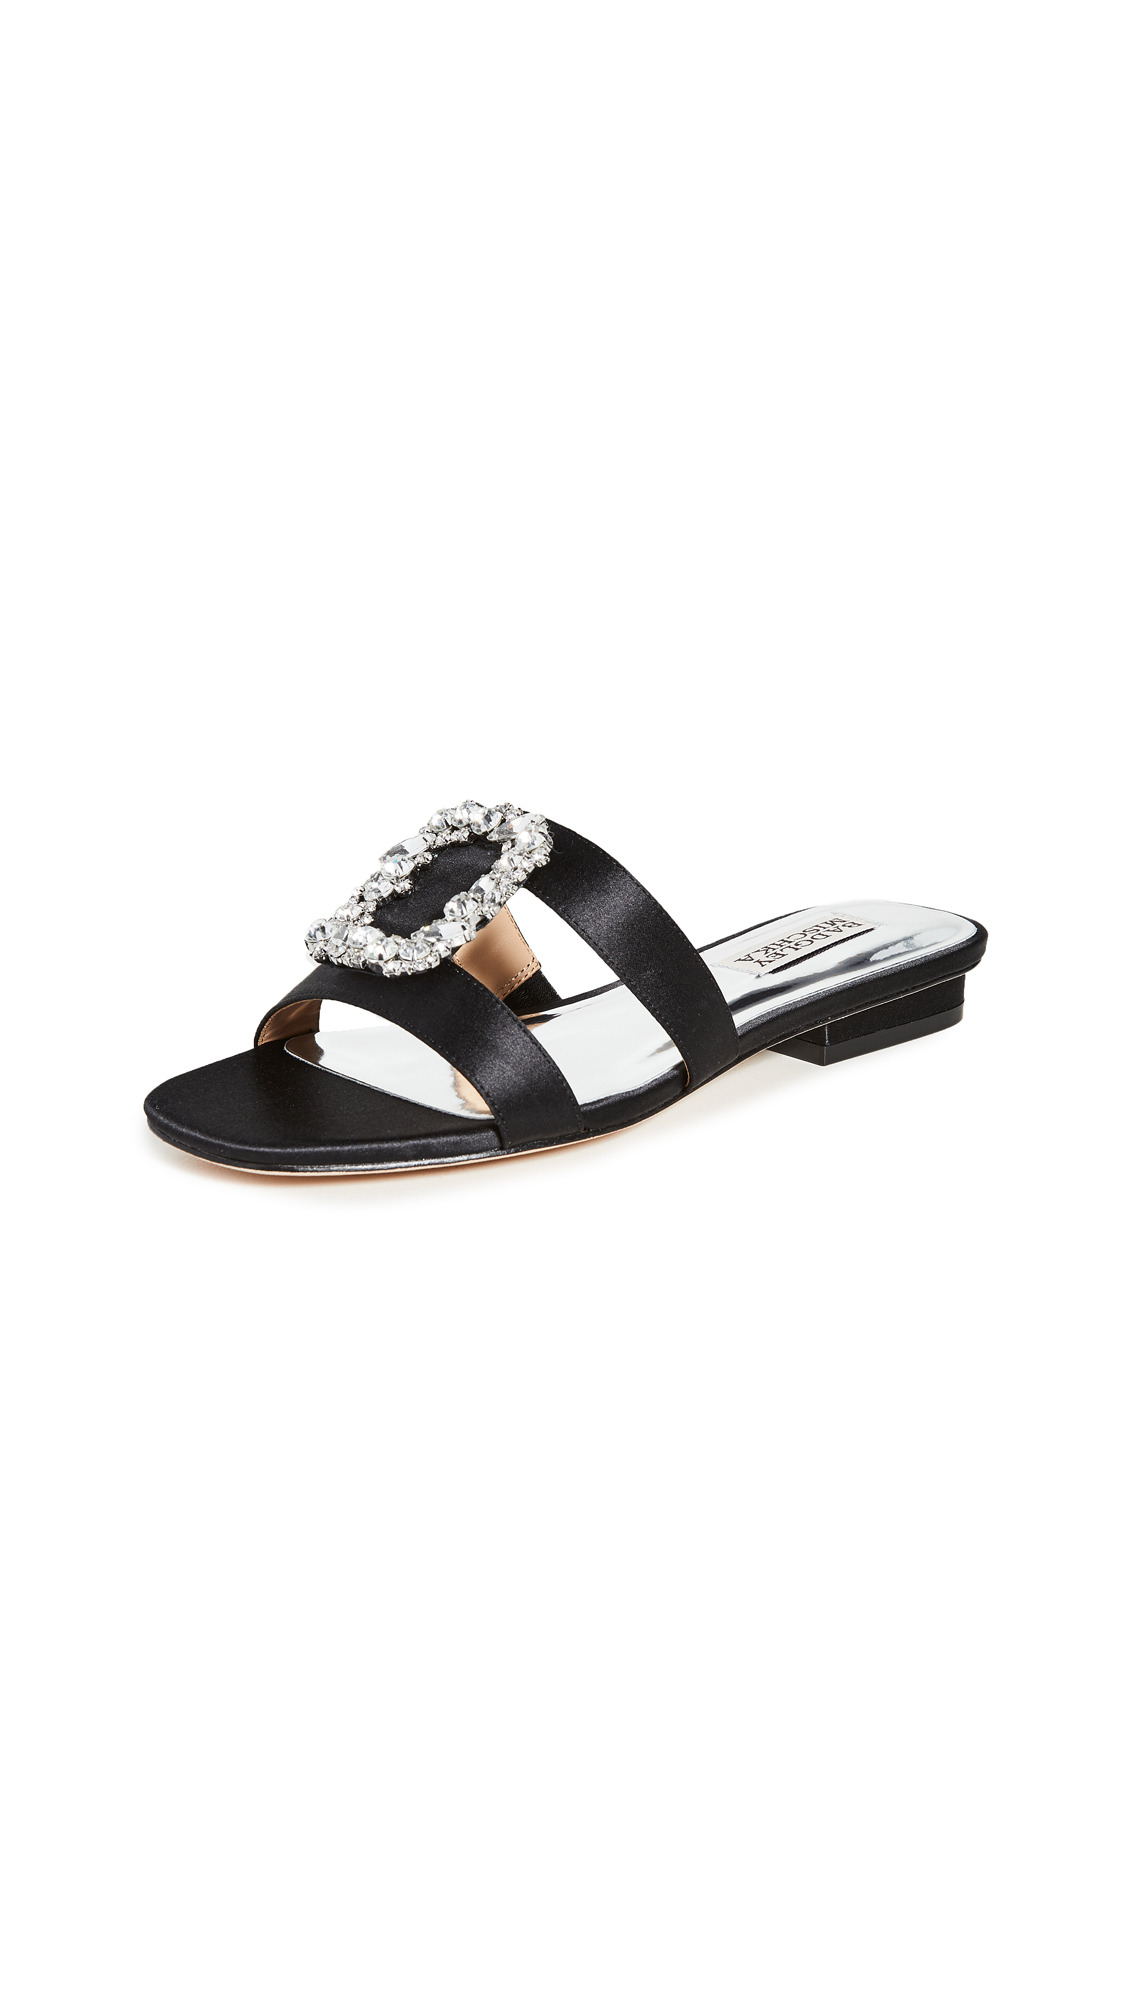 Buy Badgley Mischka Josette Slide Sandals online, shop Badgley Mischka